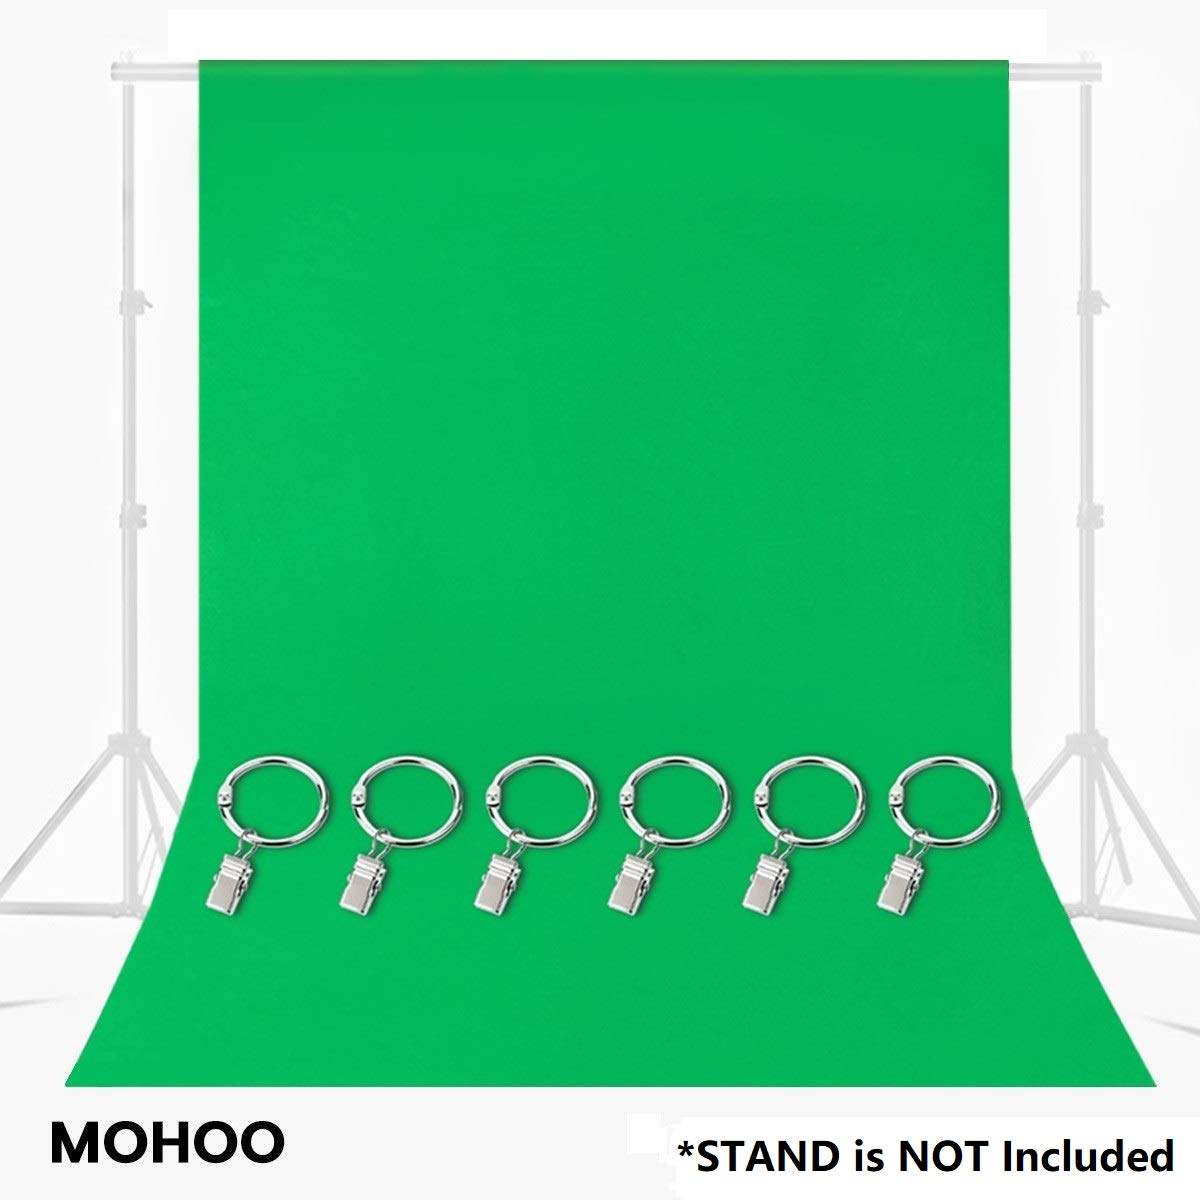 MOHOO 7x5FT Green Photography Backdrop, Green Backdrop with Ring Metal Holding Clips, Solid Color Green Screen Photo Backdrop, Studio Photography Props for Studio Video Photo Photo Shot by MOHOO